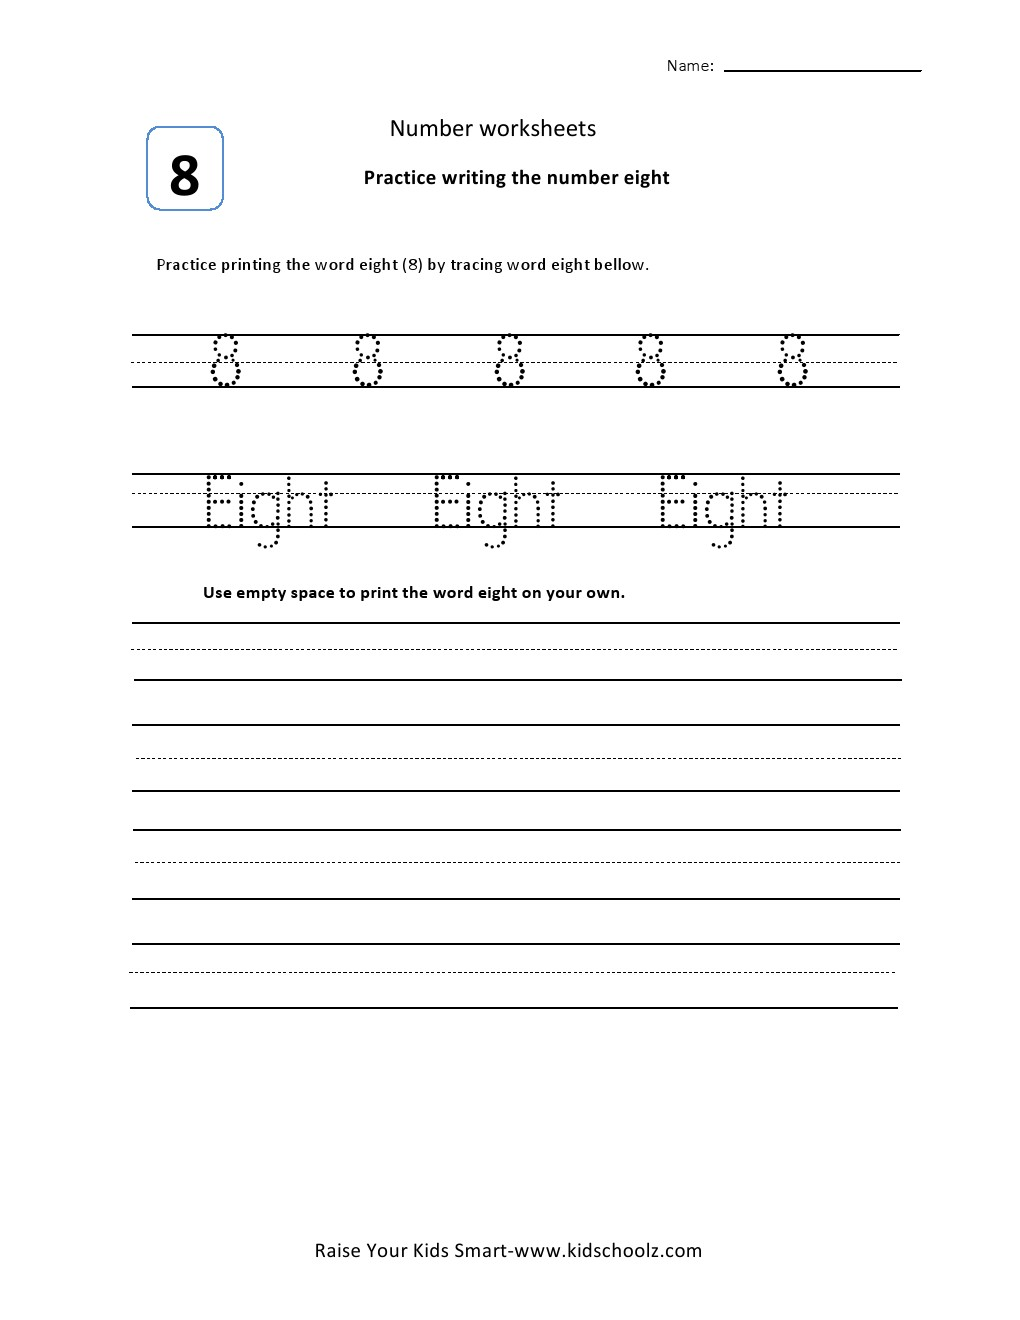 Tracing Numbers Worksheets - Eight - Kidschoolz